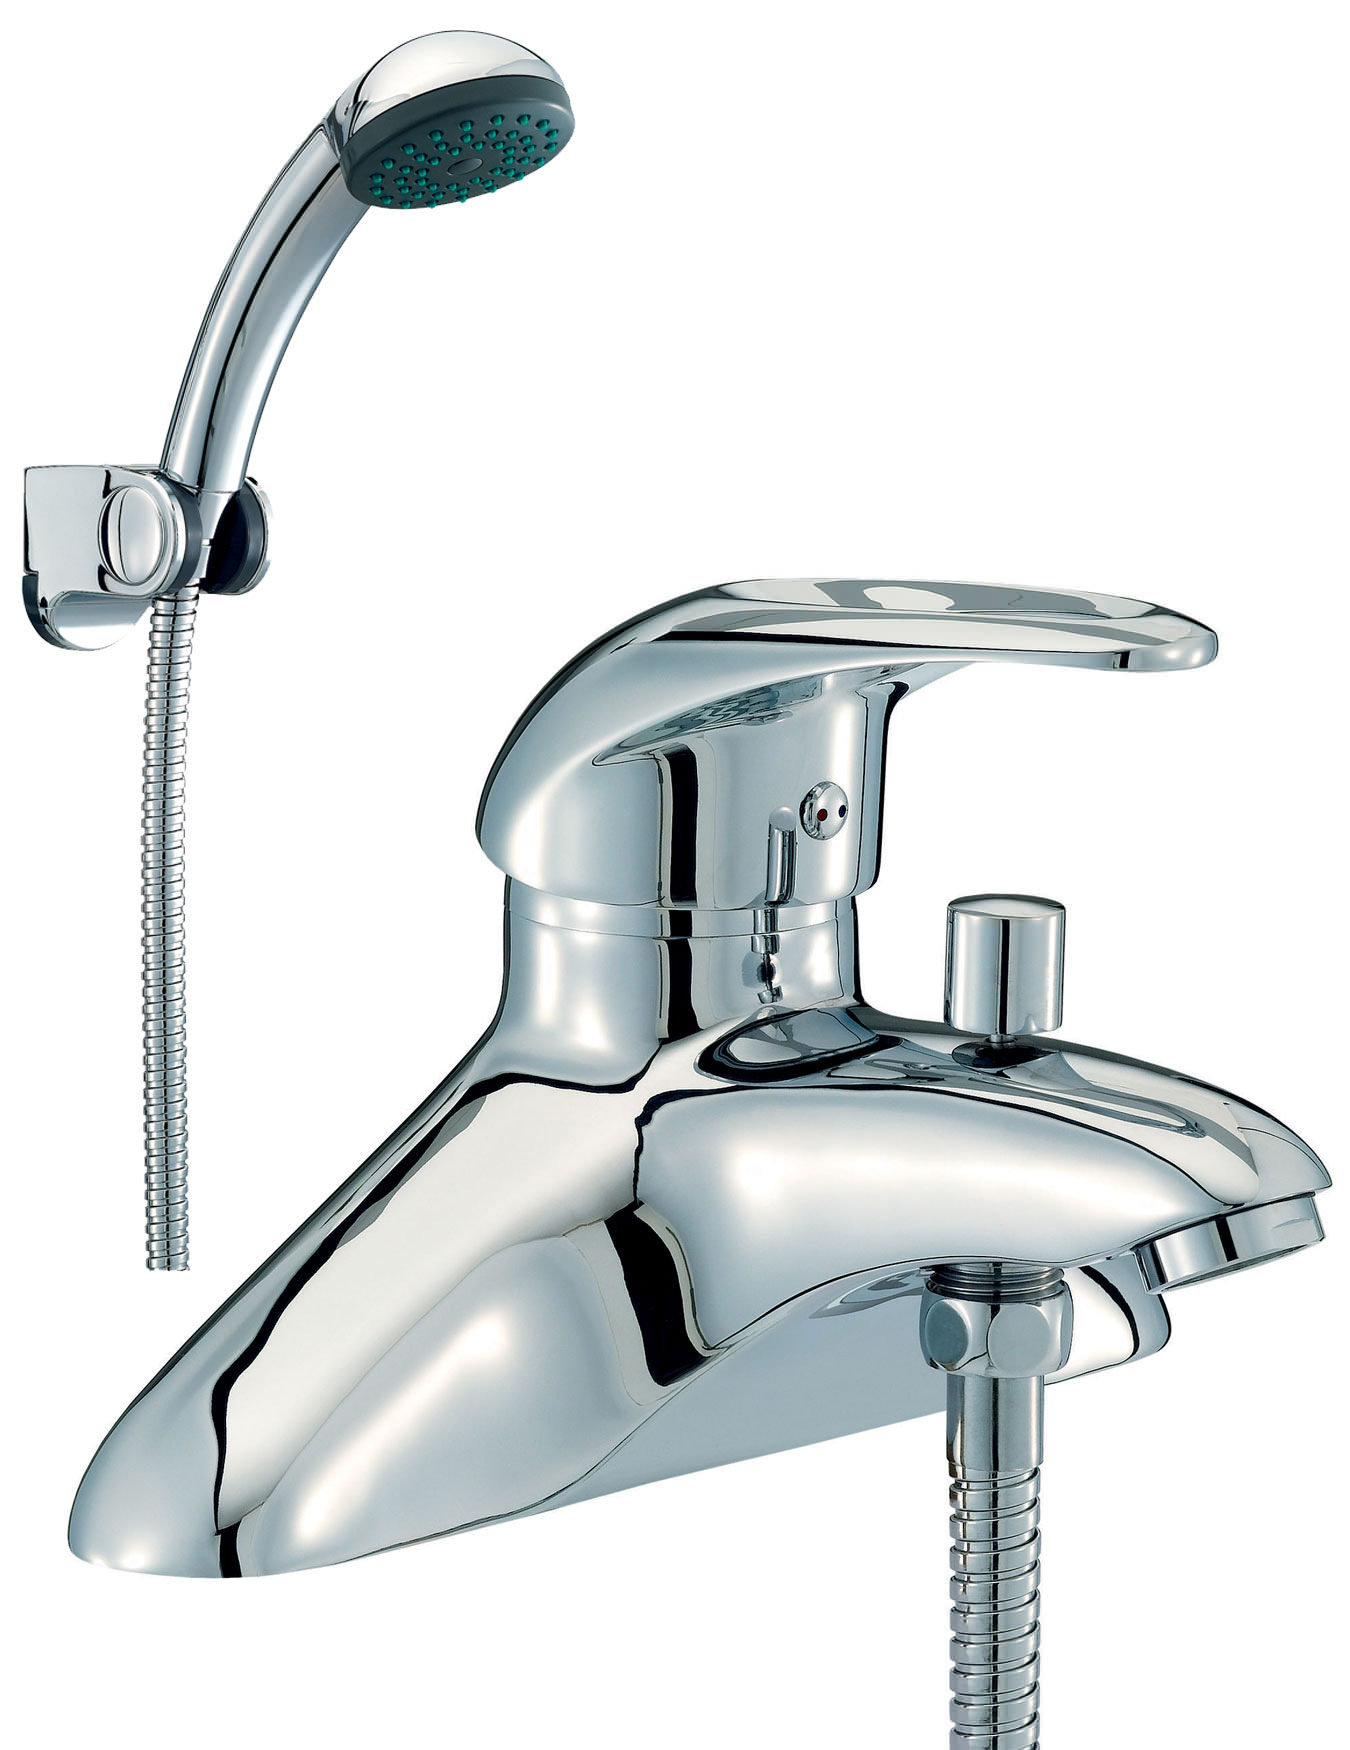 mayfair jet bath shower mixer tap with shower kit chrome dreamwerks 38 in x 38 in x 78 in neo angle mosaic